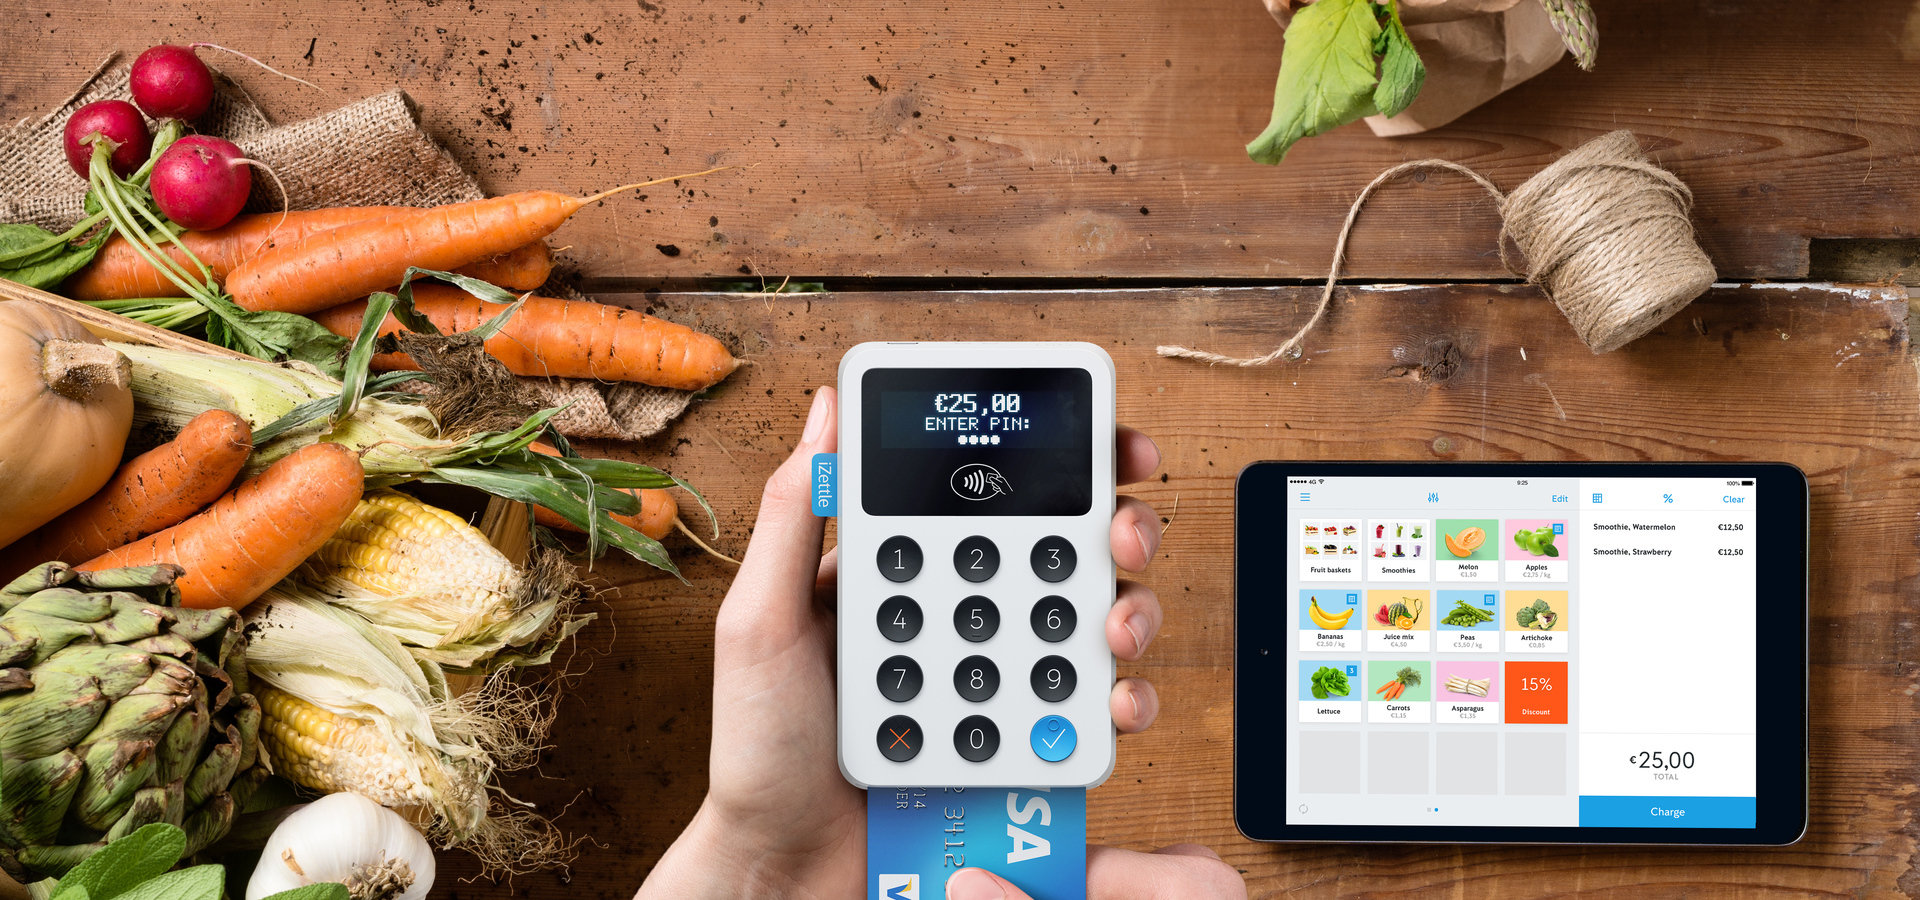 iZettle from MCI.TechVentures portfolio joins forces with UnionPay International